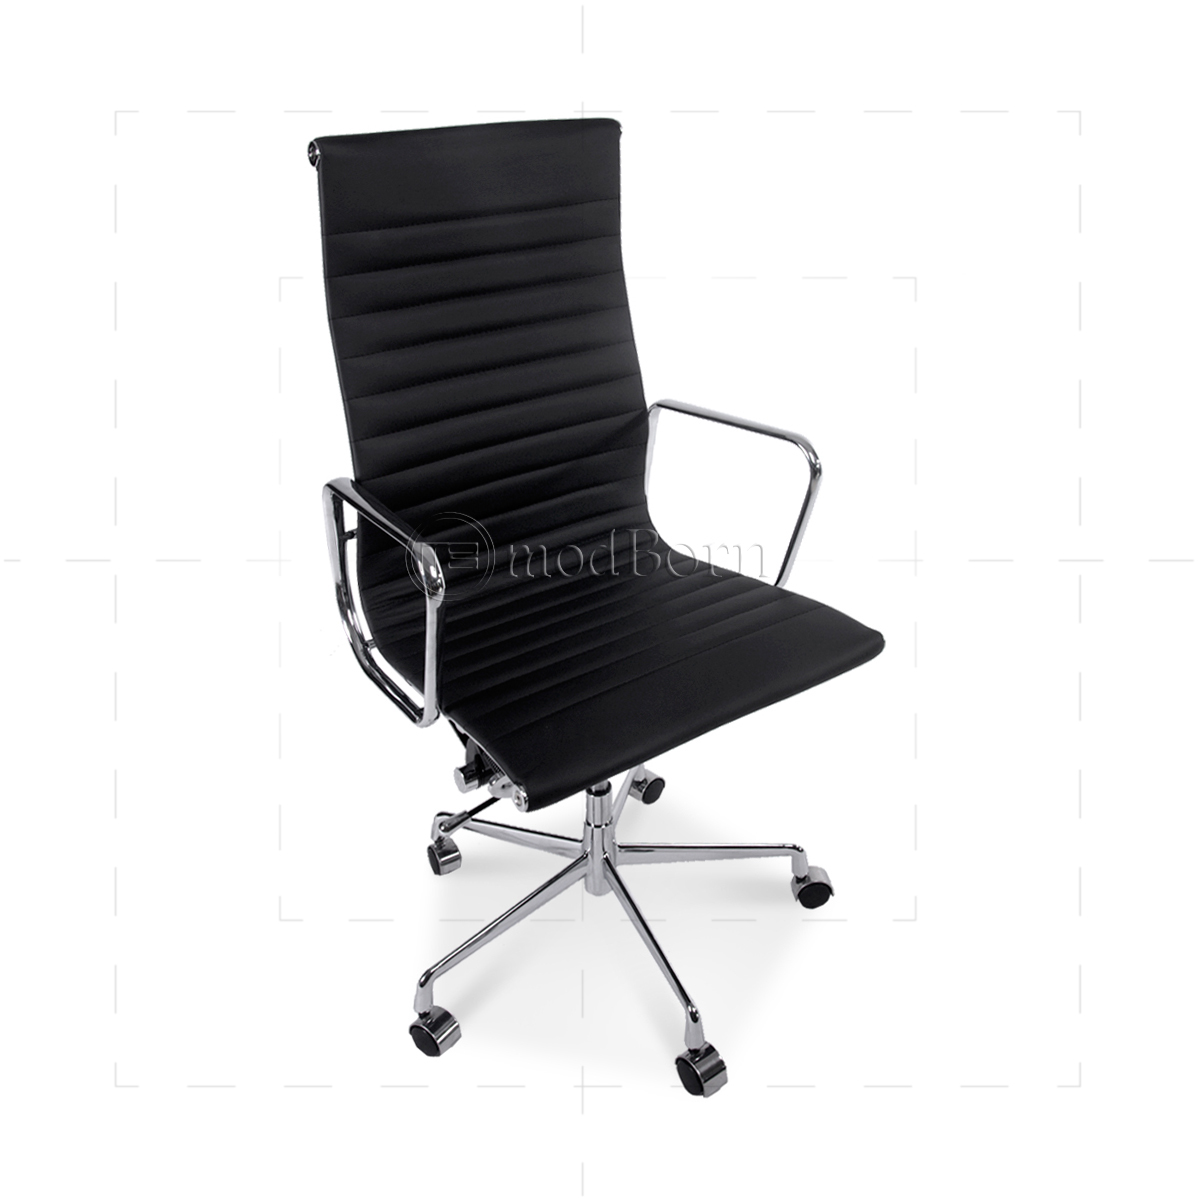 ea119 eames style office chair high back ribbed black leather replica